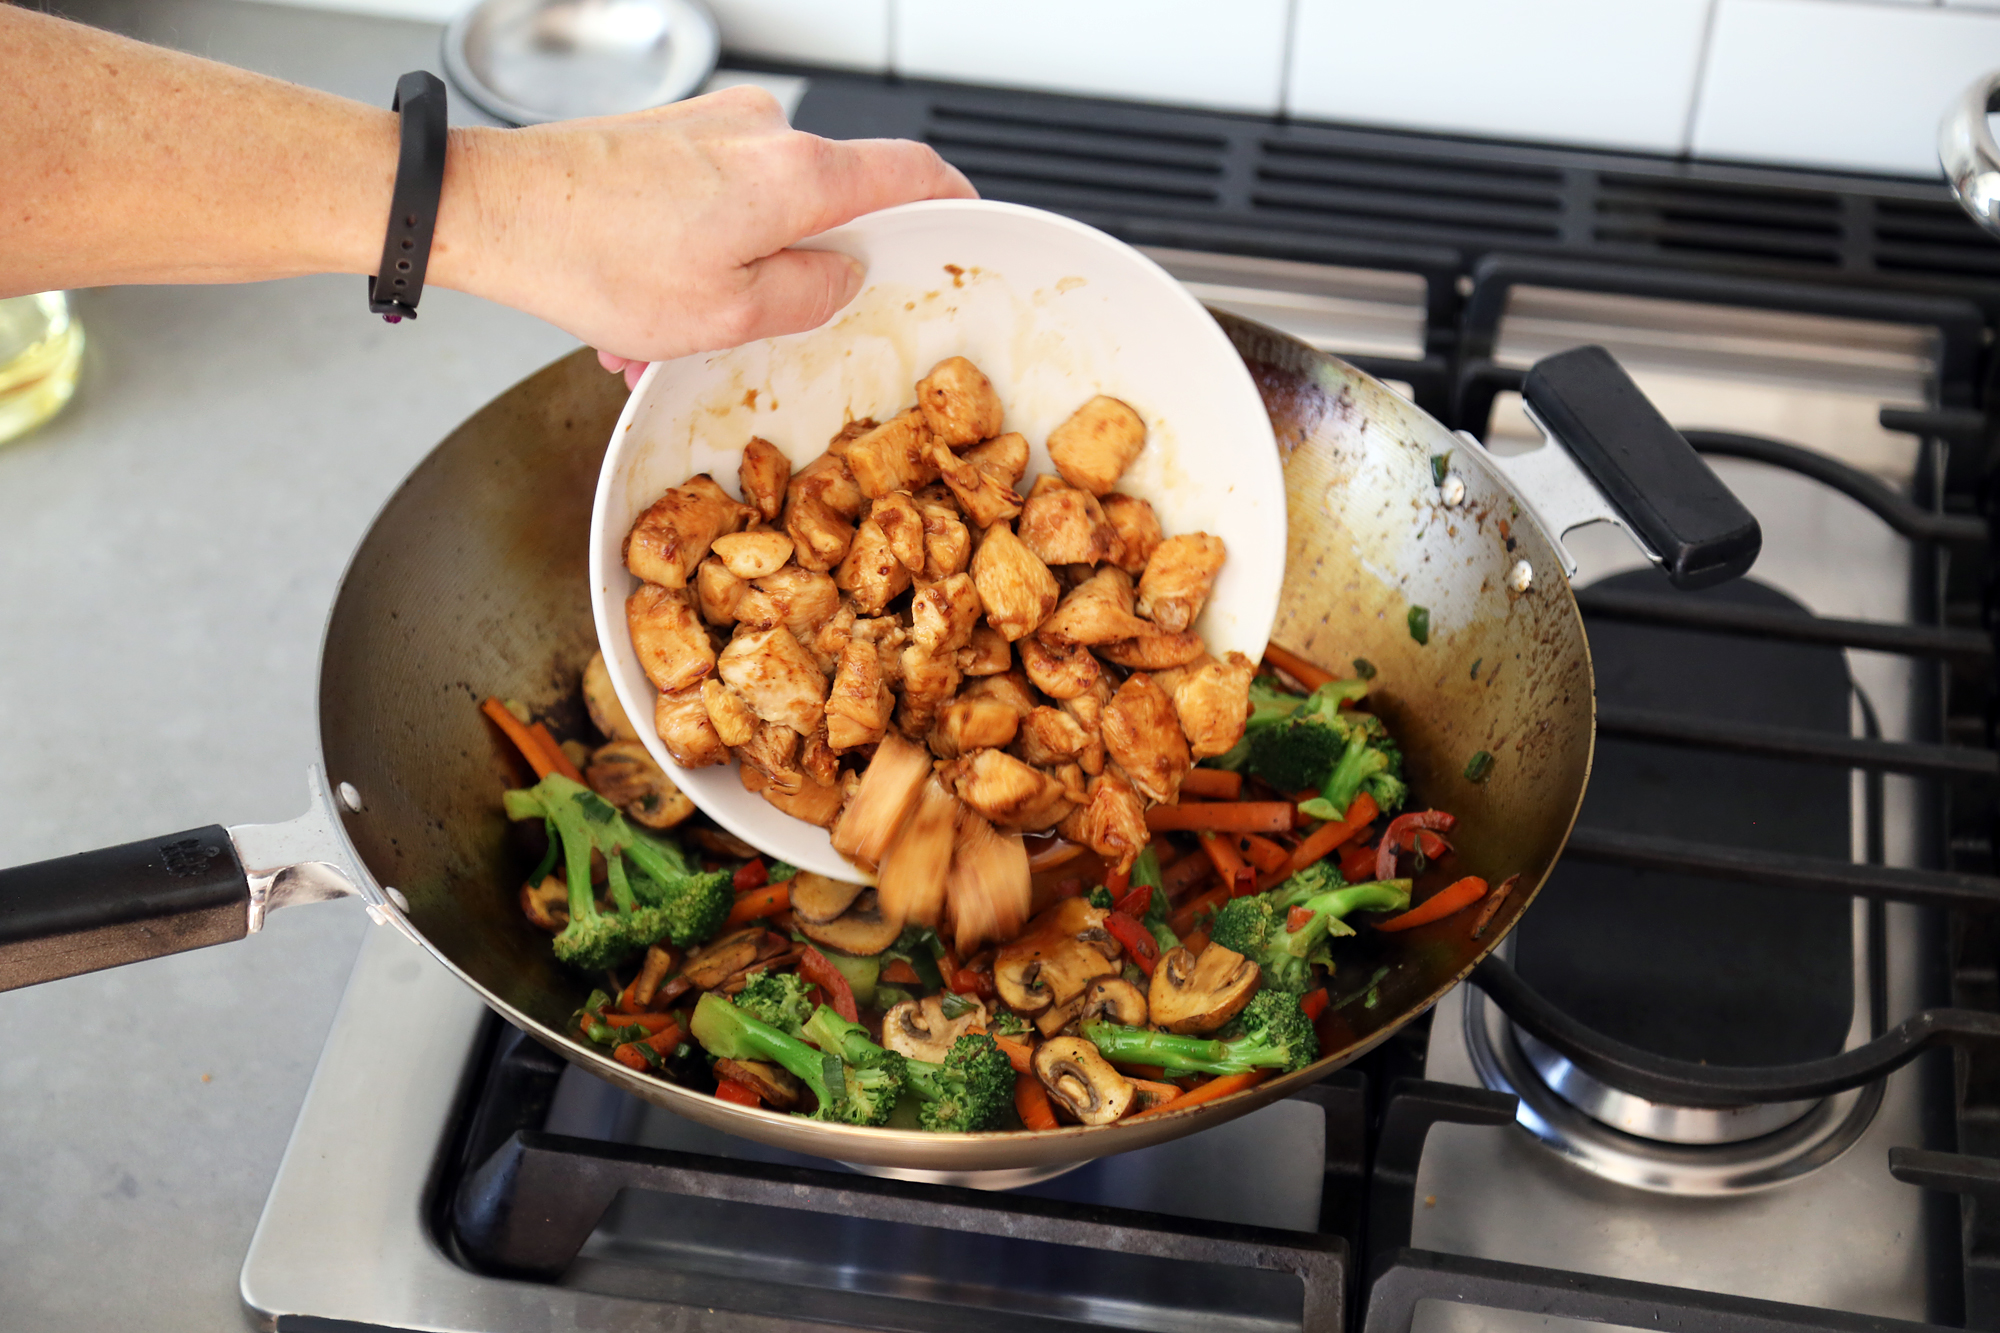 Add the chicken back to the wok along with the sauce.